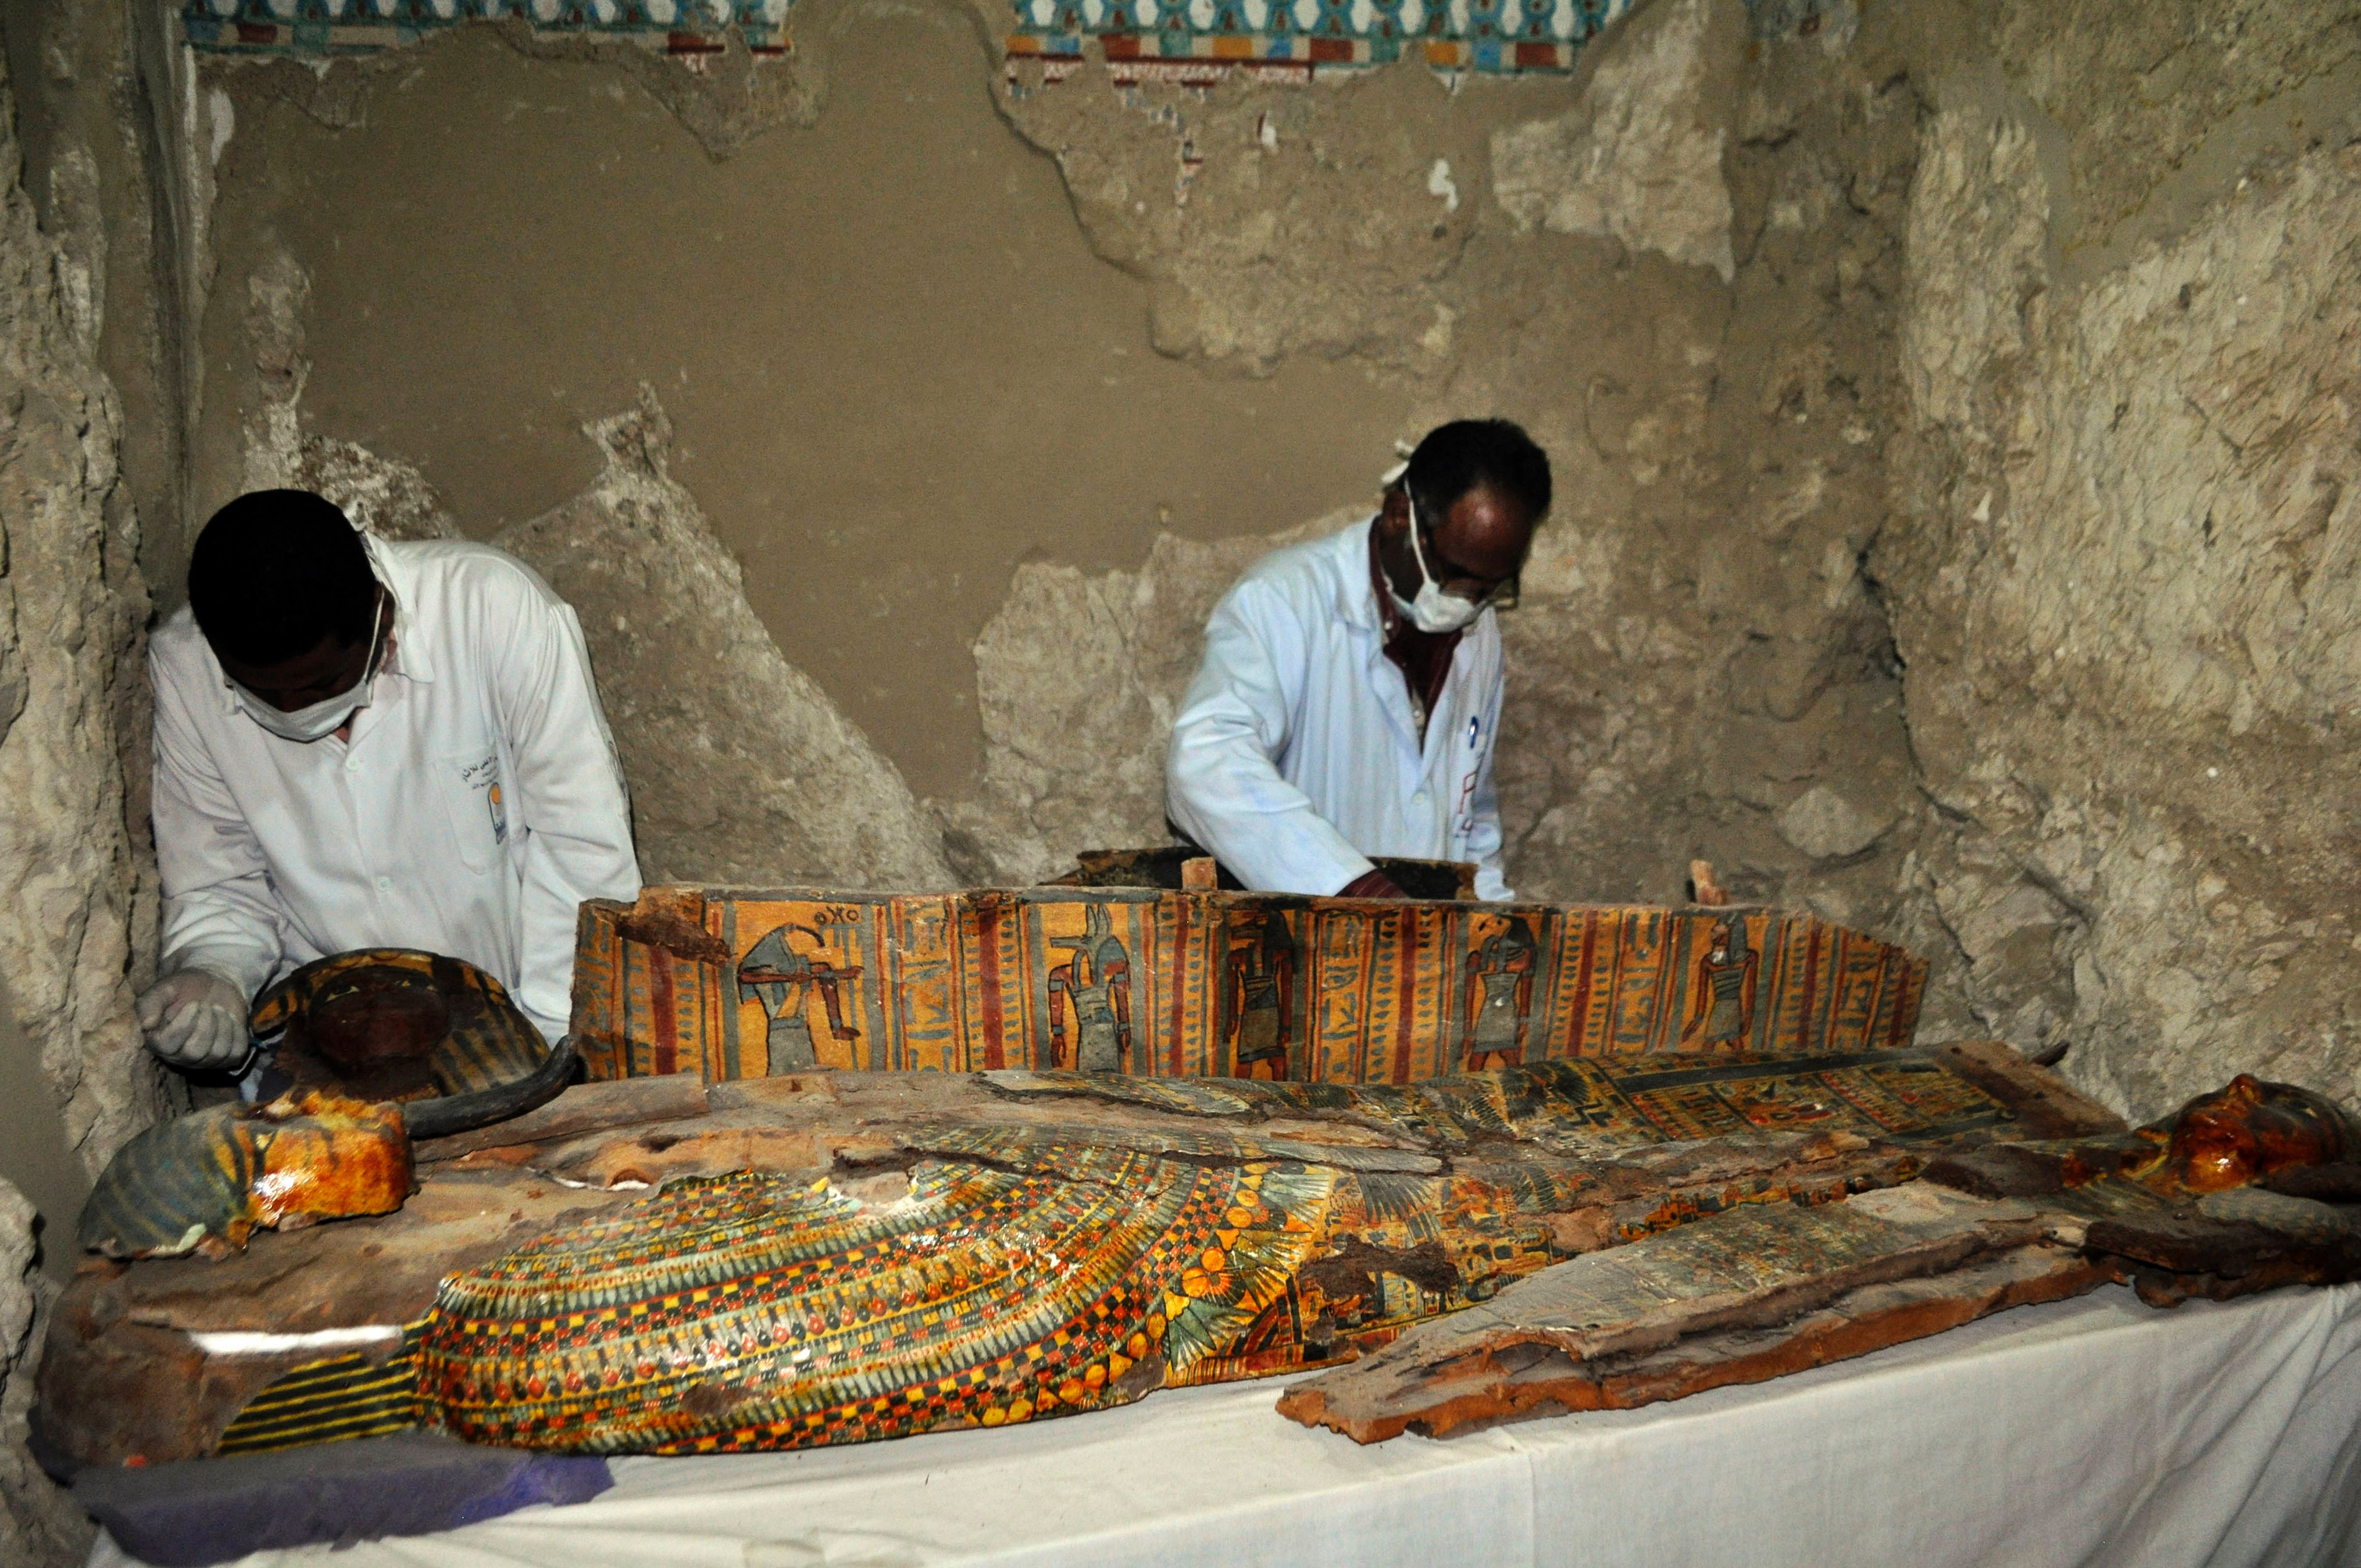 3,500-year-old Mummy Surprise Found in Egypt - History in ...